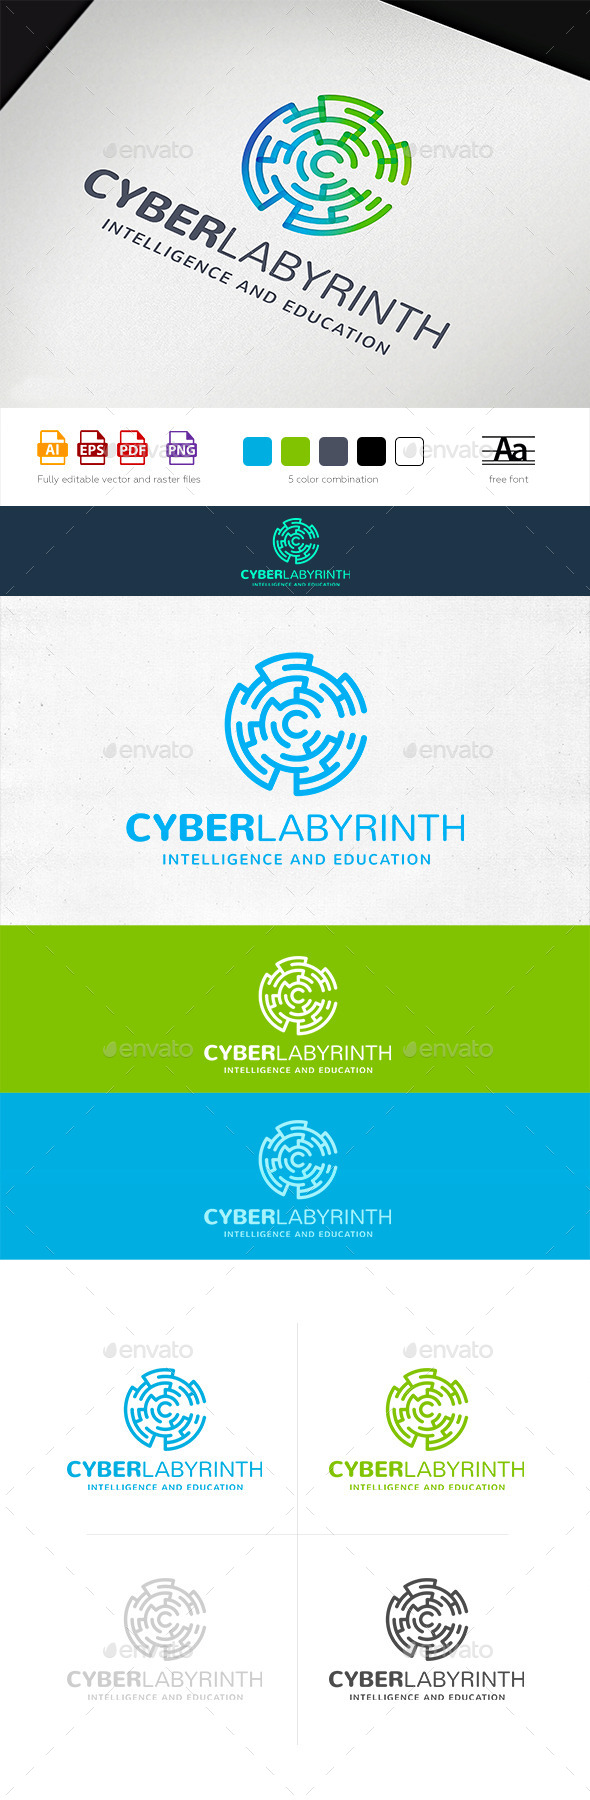 Cyber Labyrinth Logo Tamplate - Abstract Logo Templates